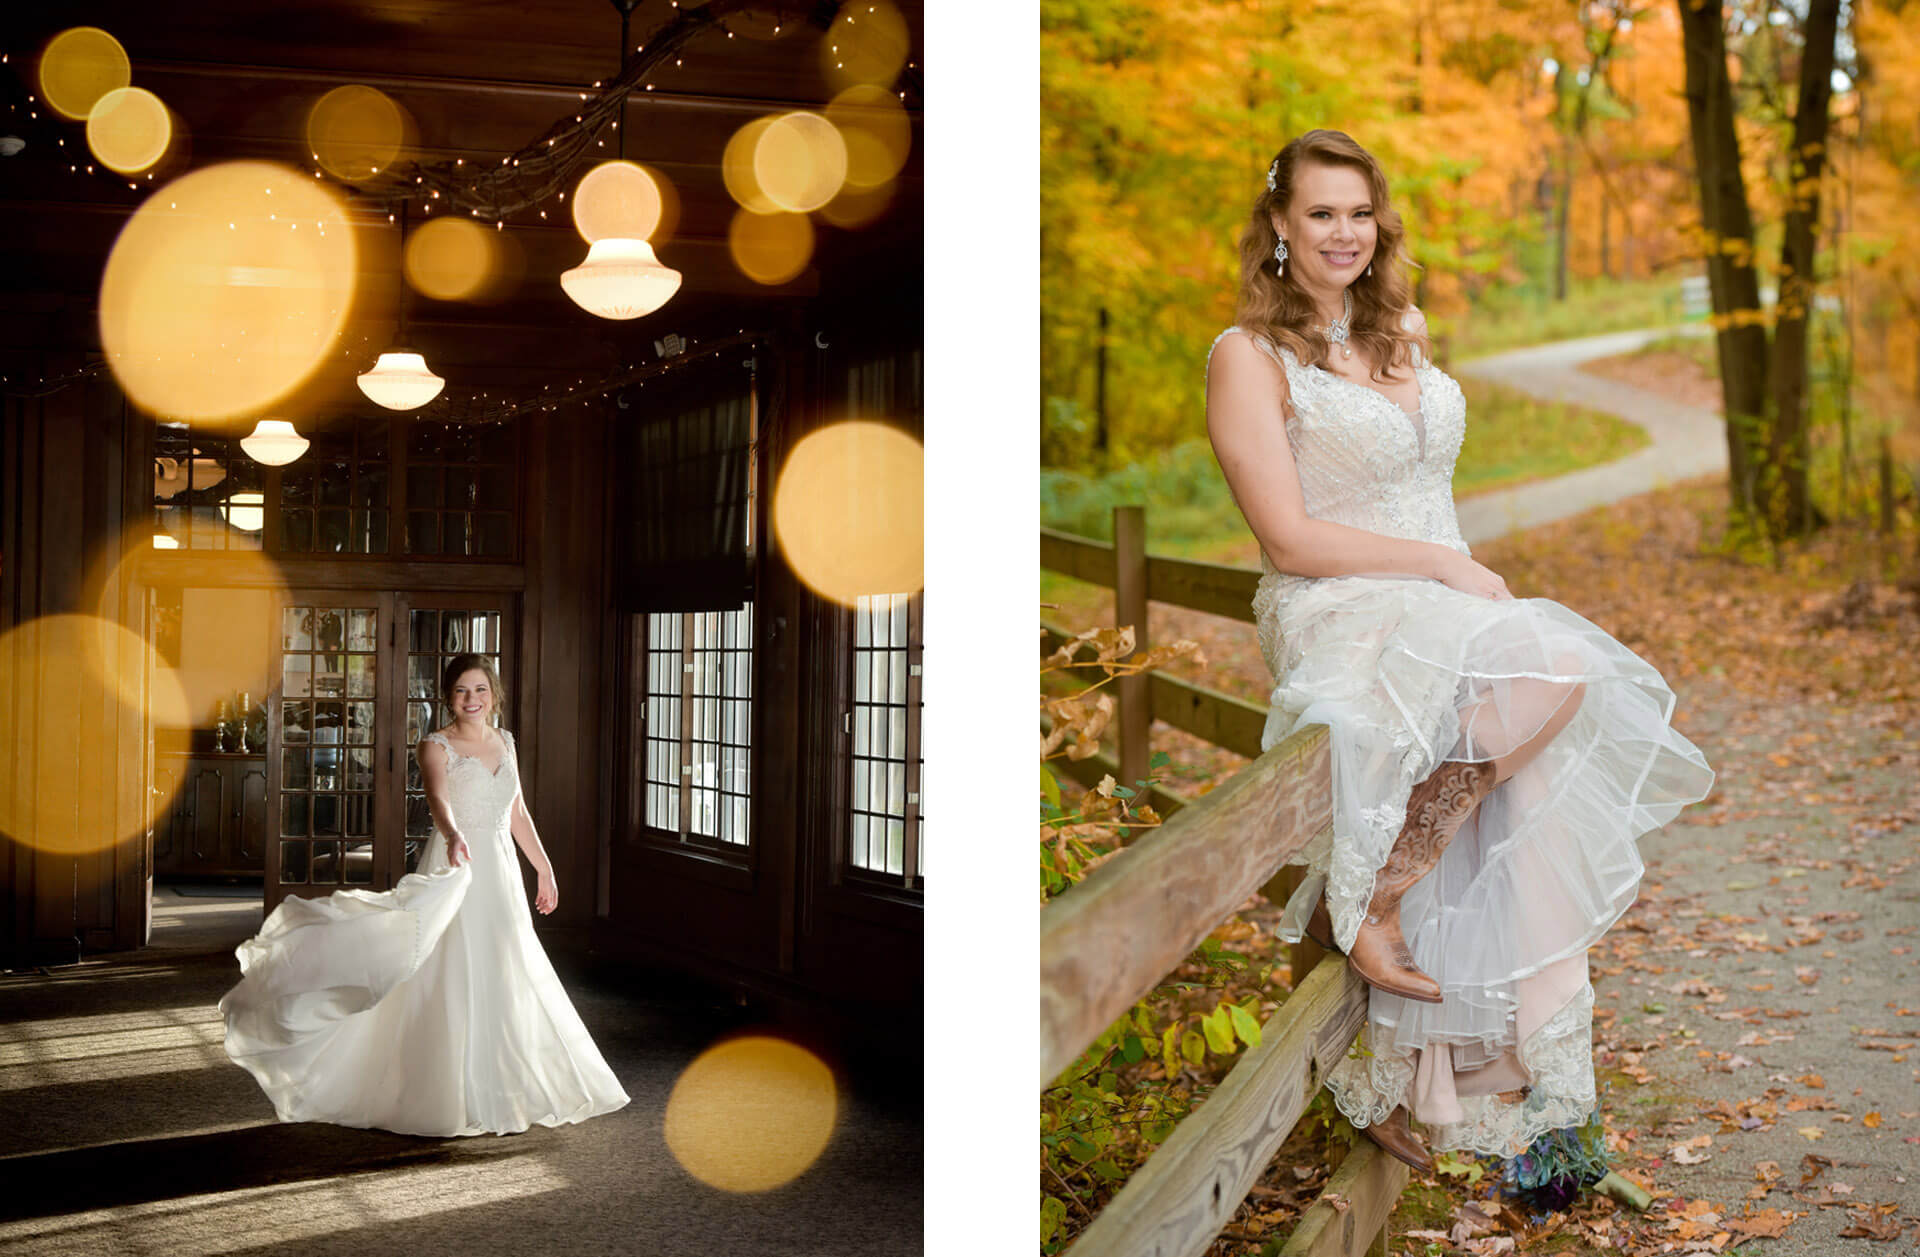 Brides pose in the fall during their weddings at Waldenwoods Resort in Howell, Michigan during the pandemic.